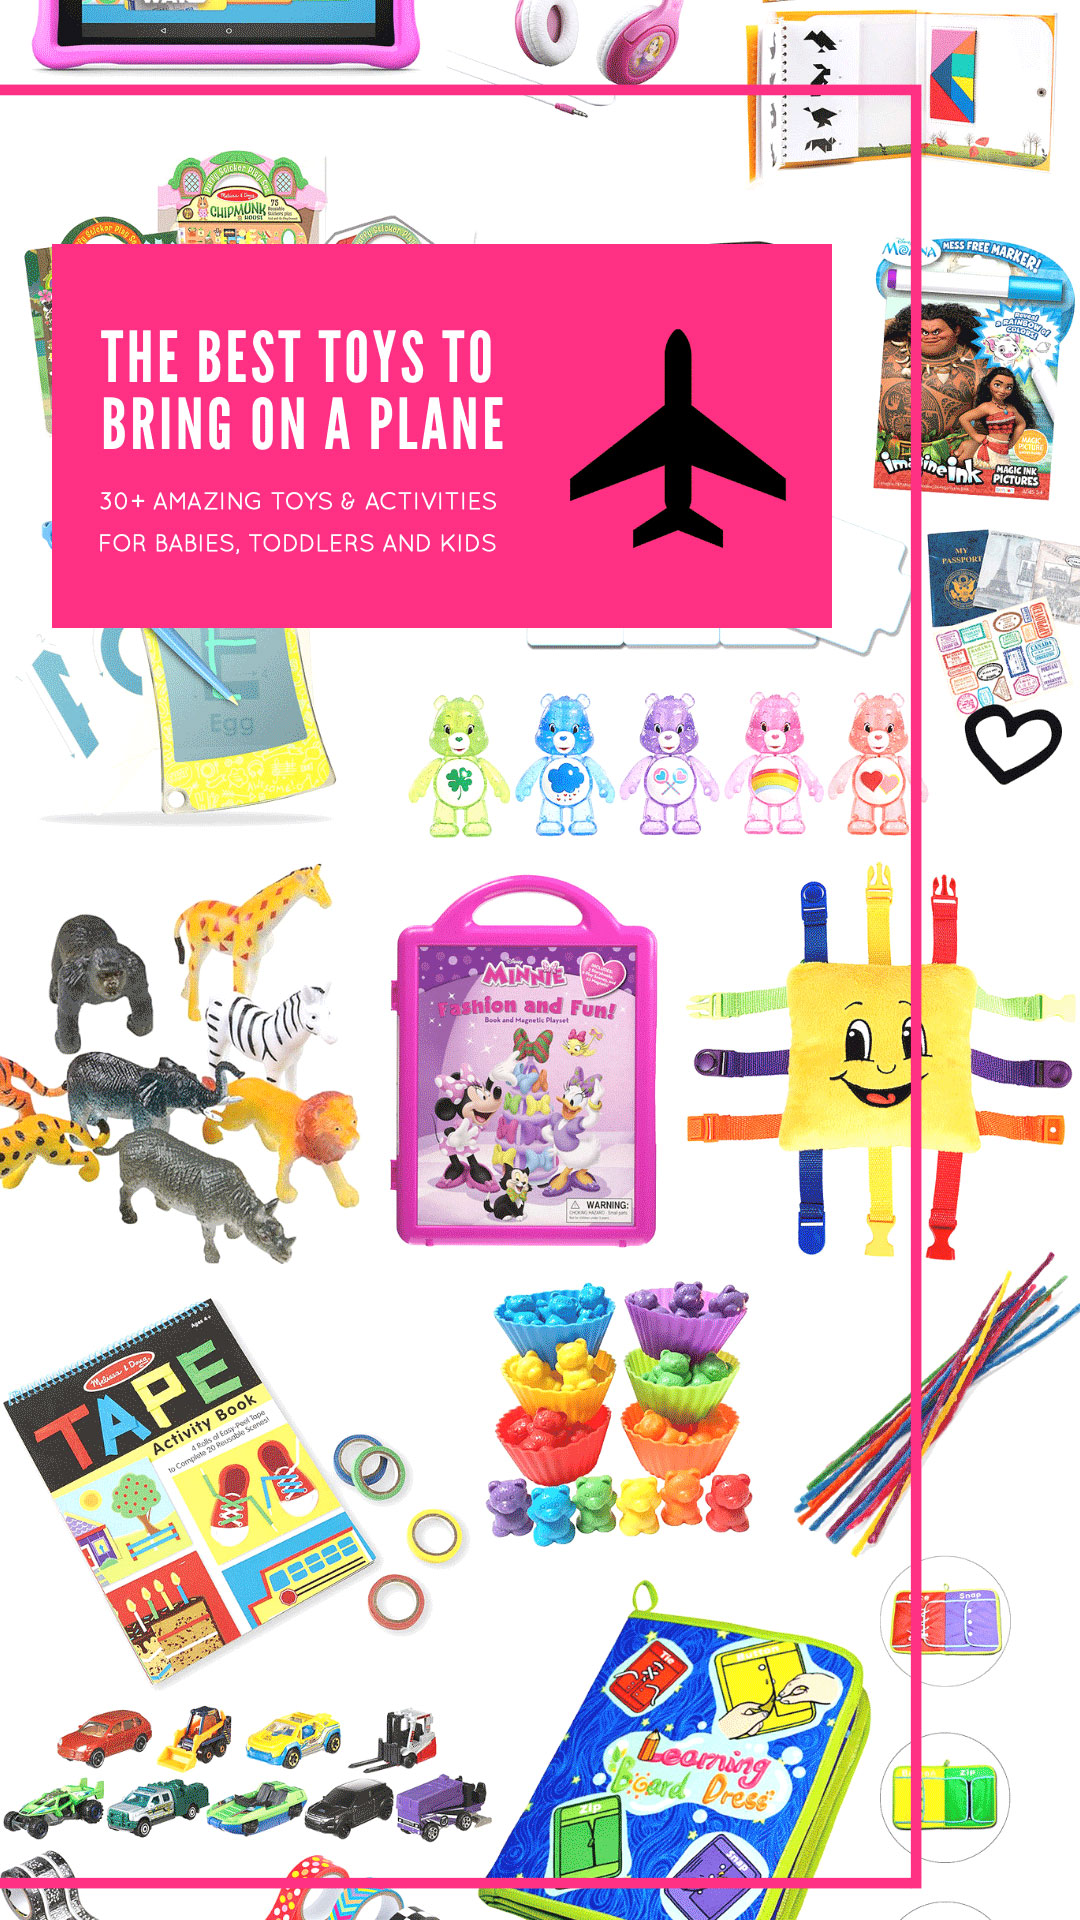 Consider this the ultimate guide to the very best toys, games, and activities to bring on a plane for your babies, toddlers, and kids. #travelwithkids #travel #flyingwithkids #flyingwithbaby #traveltoys  #airplanetoys #whattobringonaplane | glitterinc.com | @glitterinc